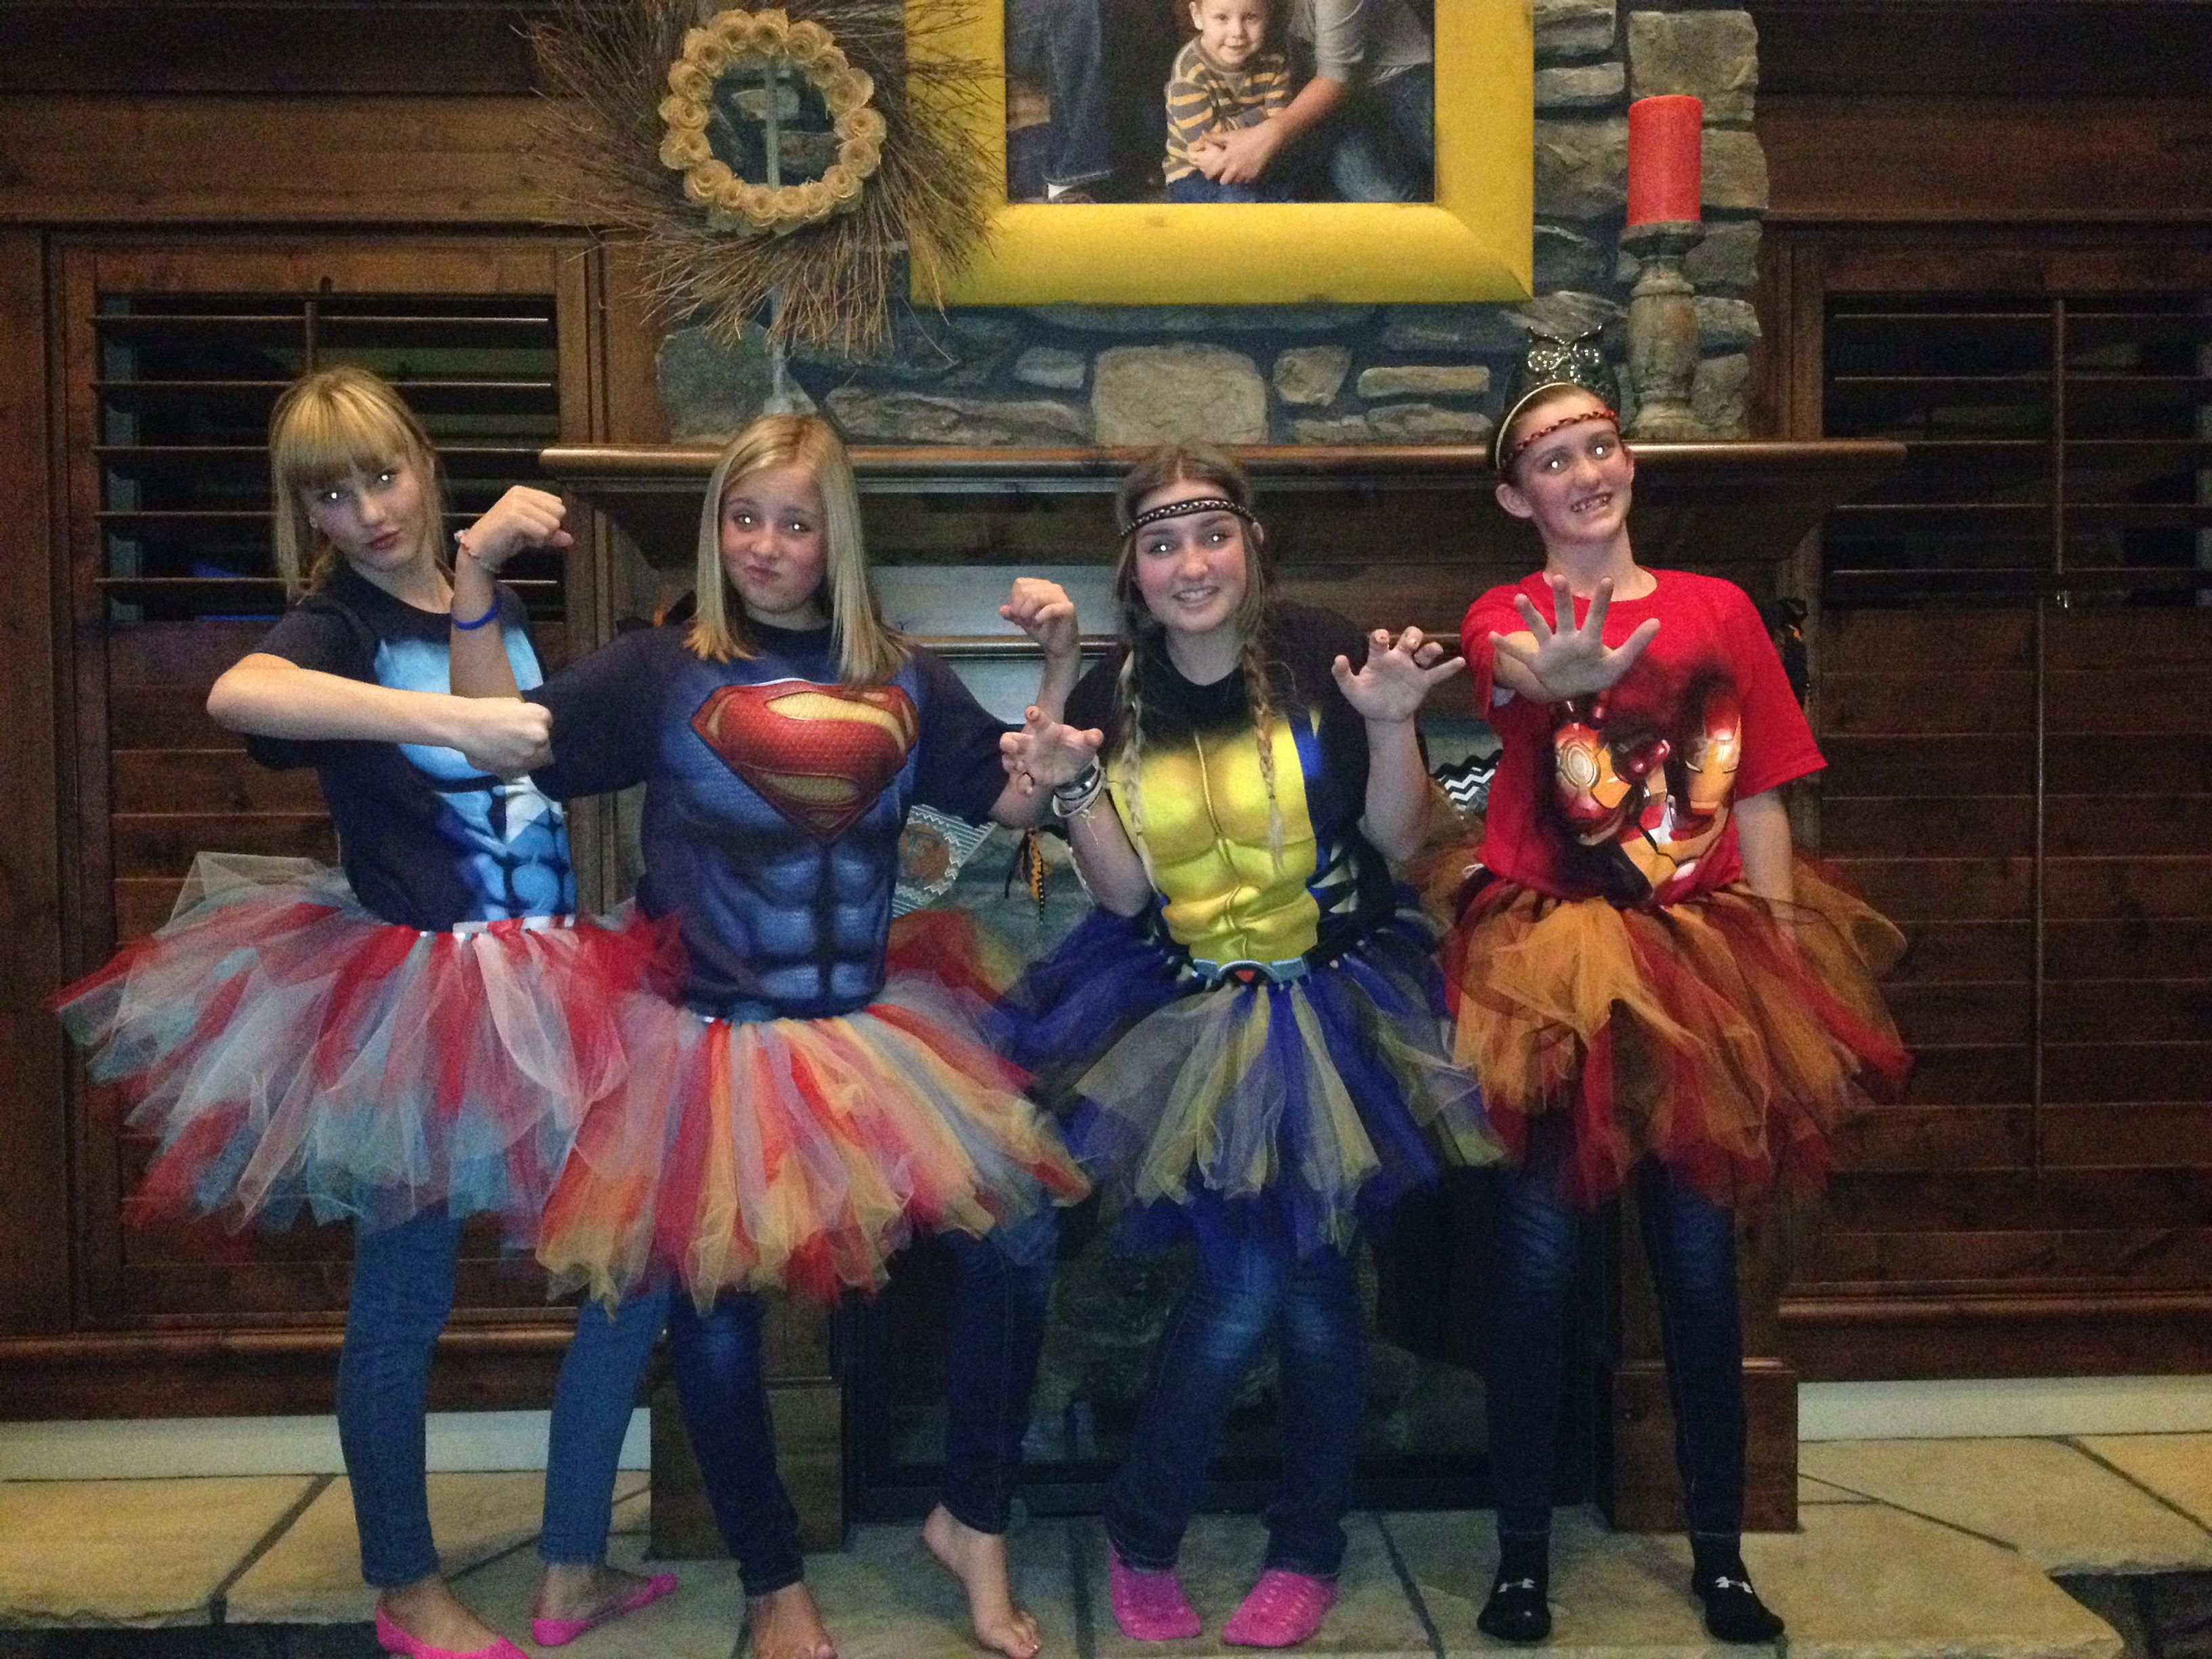 My best friends and I all made superhero costumes for Halloween ...